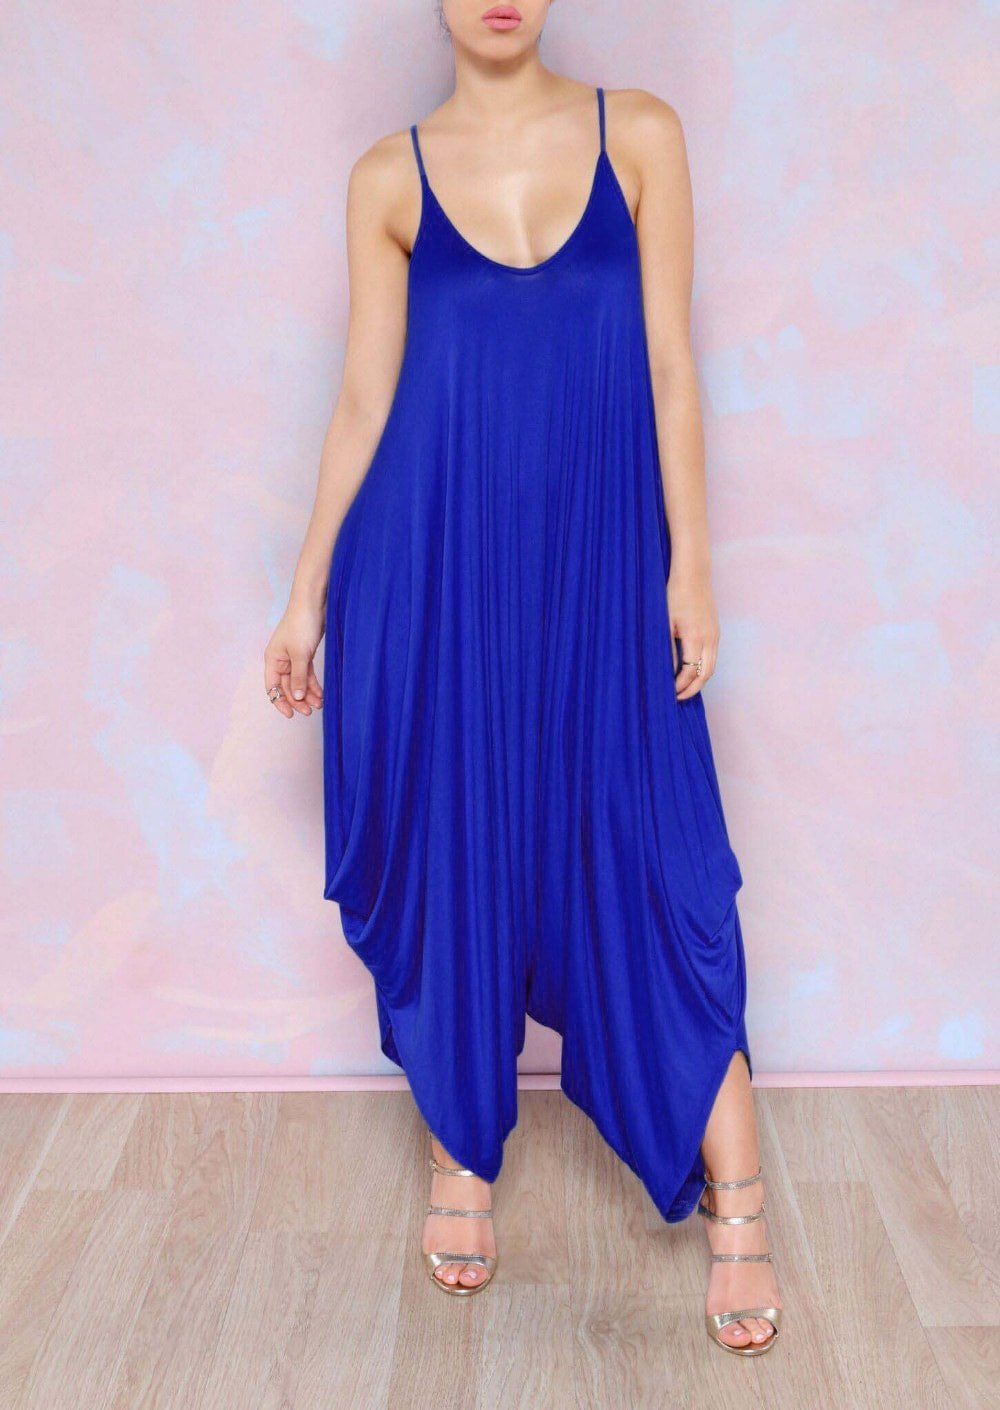 Beautiful Royal Blue Strapless Jumpsuit Sweetheart Ruched Jumpsuit For Women - Milanoo.com